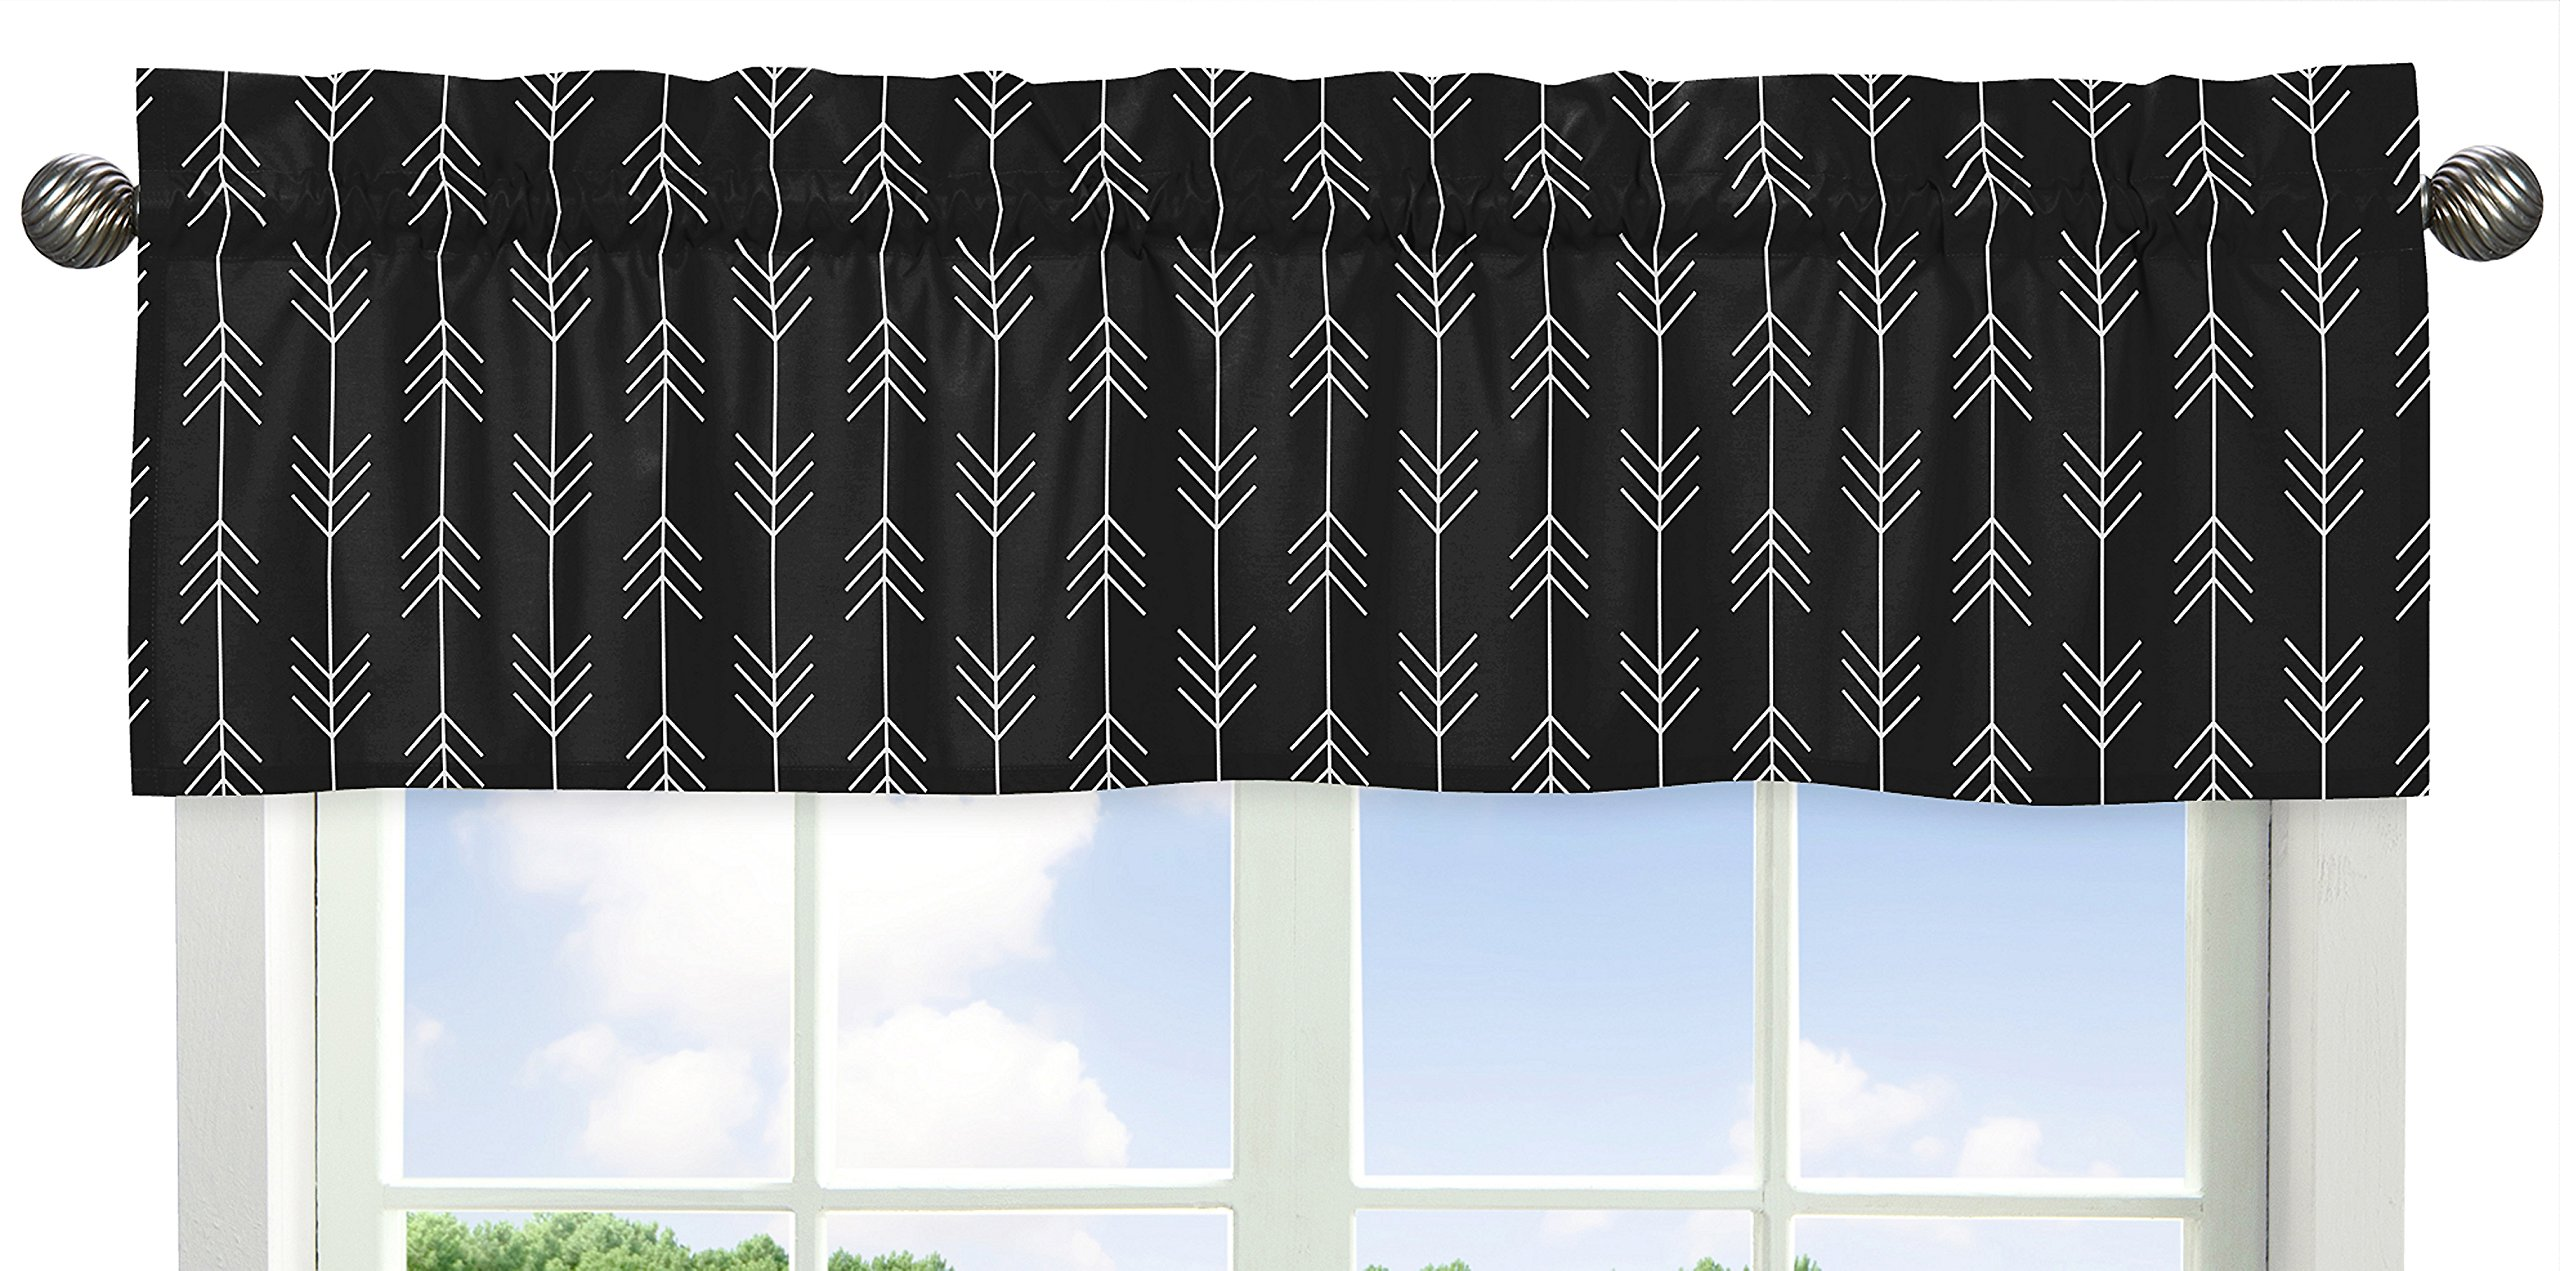 Sweet Jojo Designs Black and White Woodland Arrow Window Treatment Valance for Rustic Patch Collection by Sweet Jojo Designs